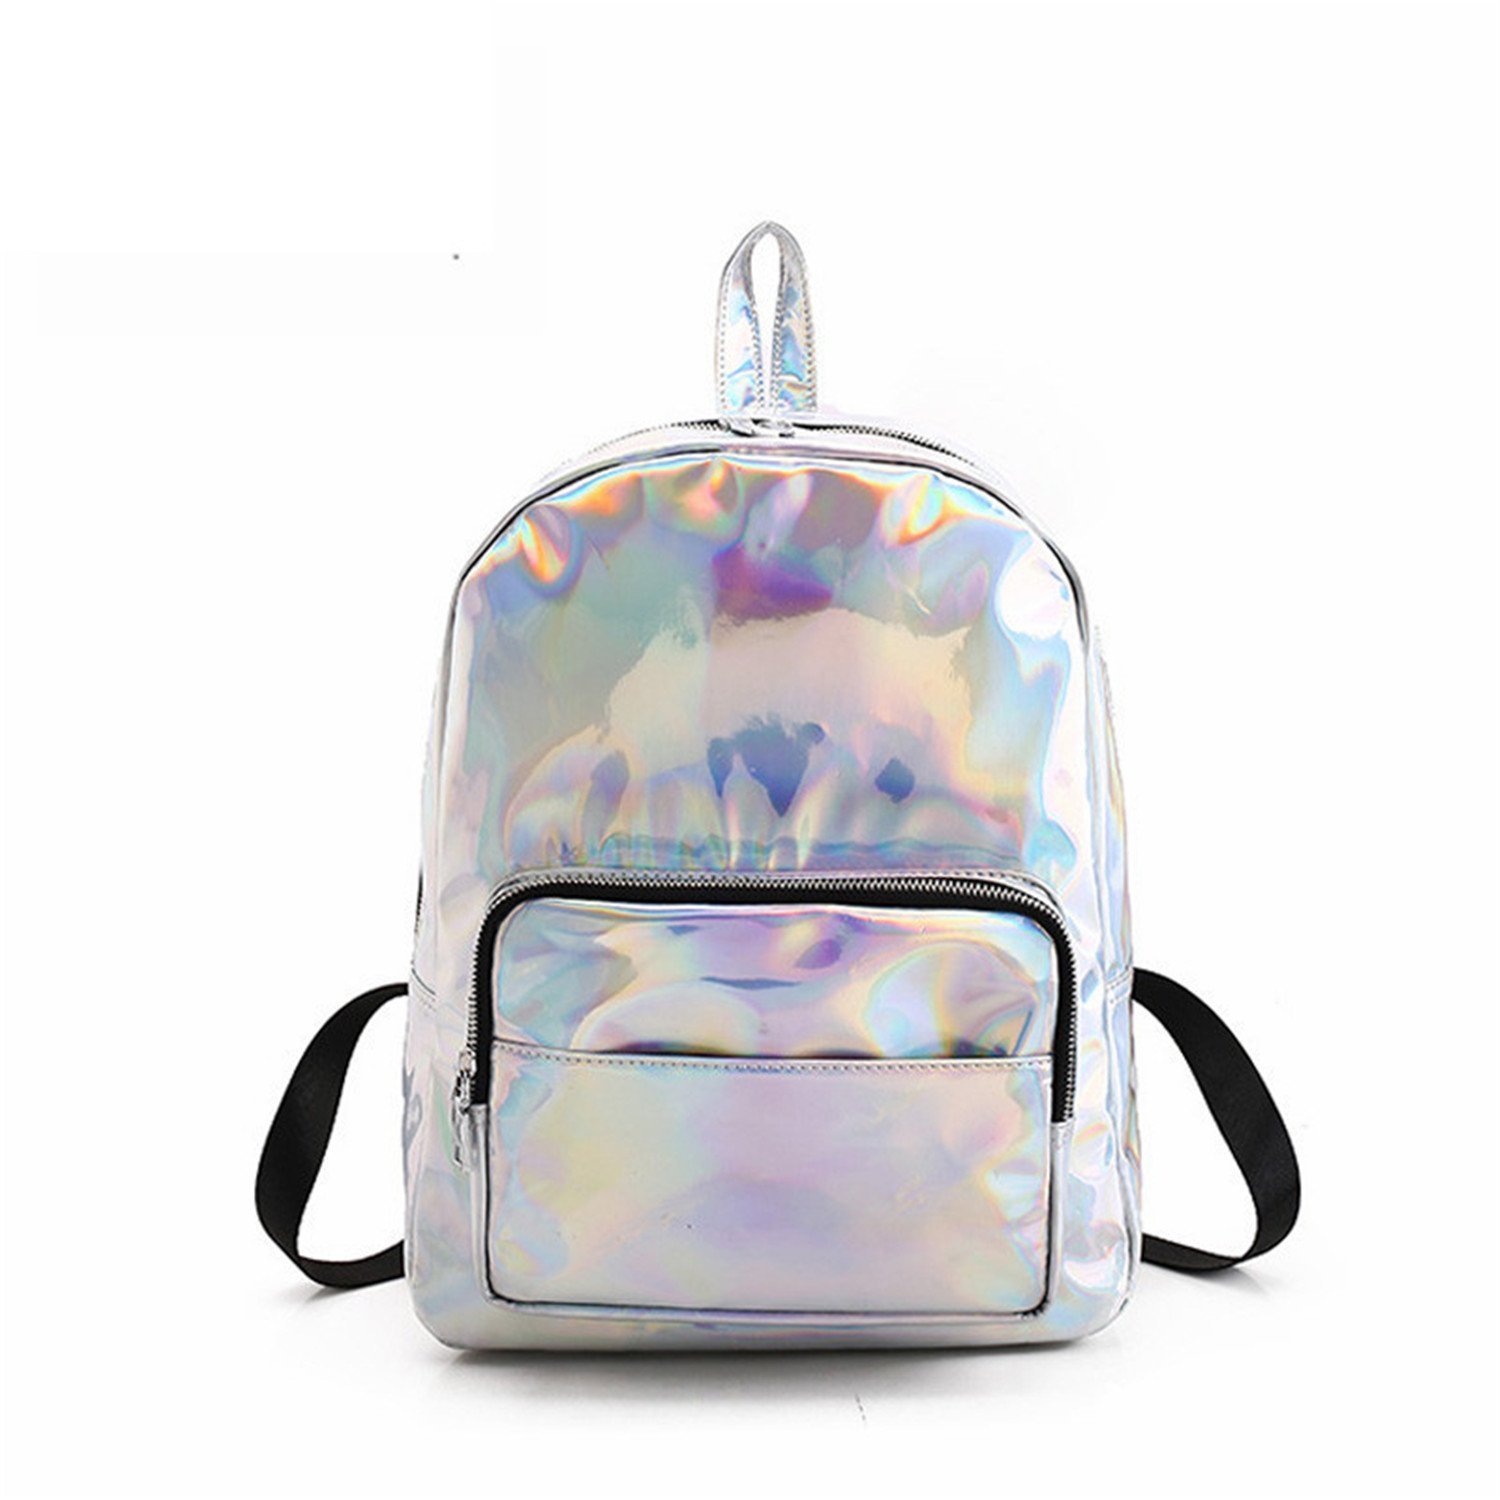 Amazon.com: Brand Silver Backpack Women Bag New Backpack ...